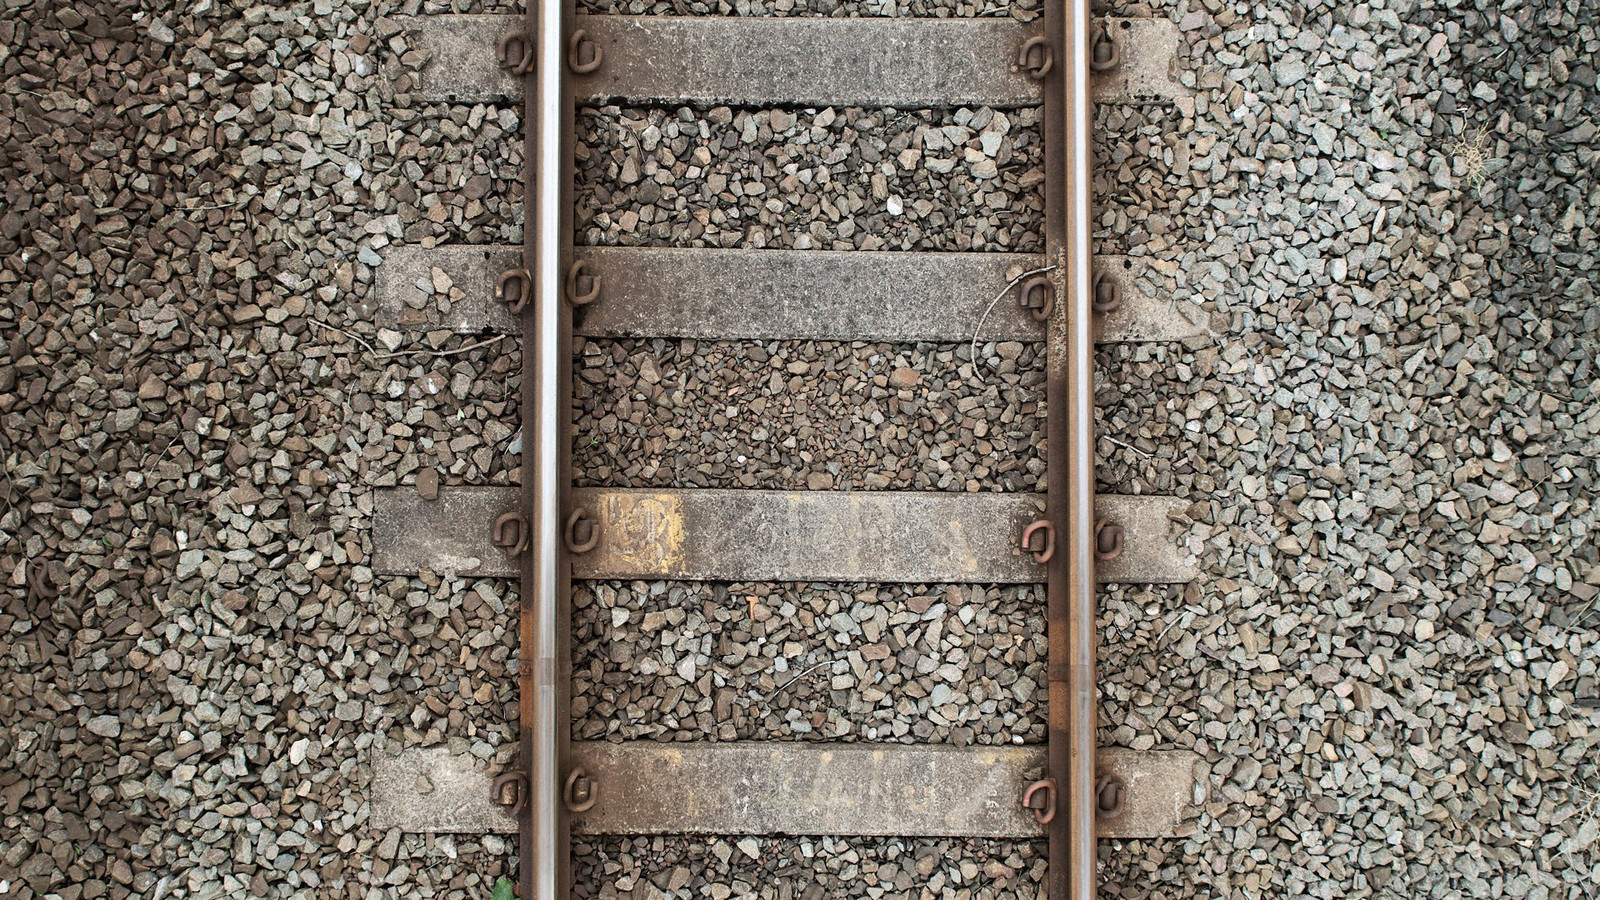 Reference from https://w-dog.net/wallpaper/stones-rails-railroad-top-view/id/336788/